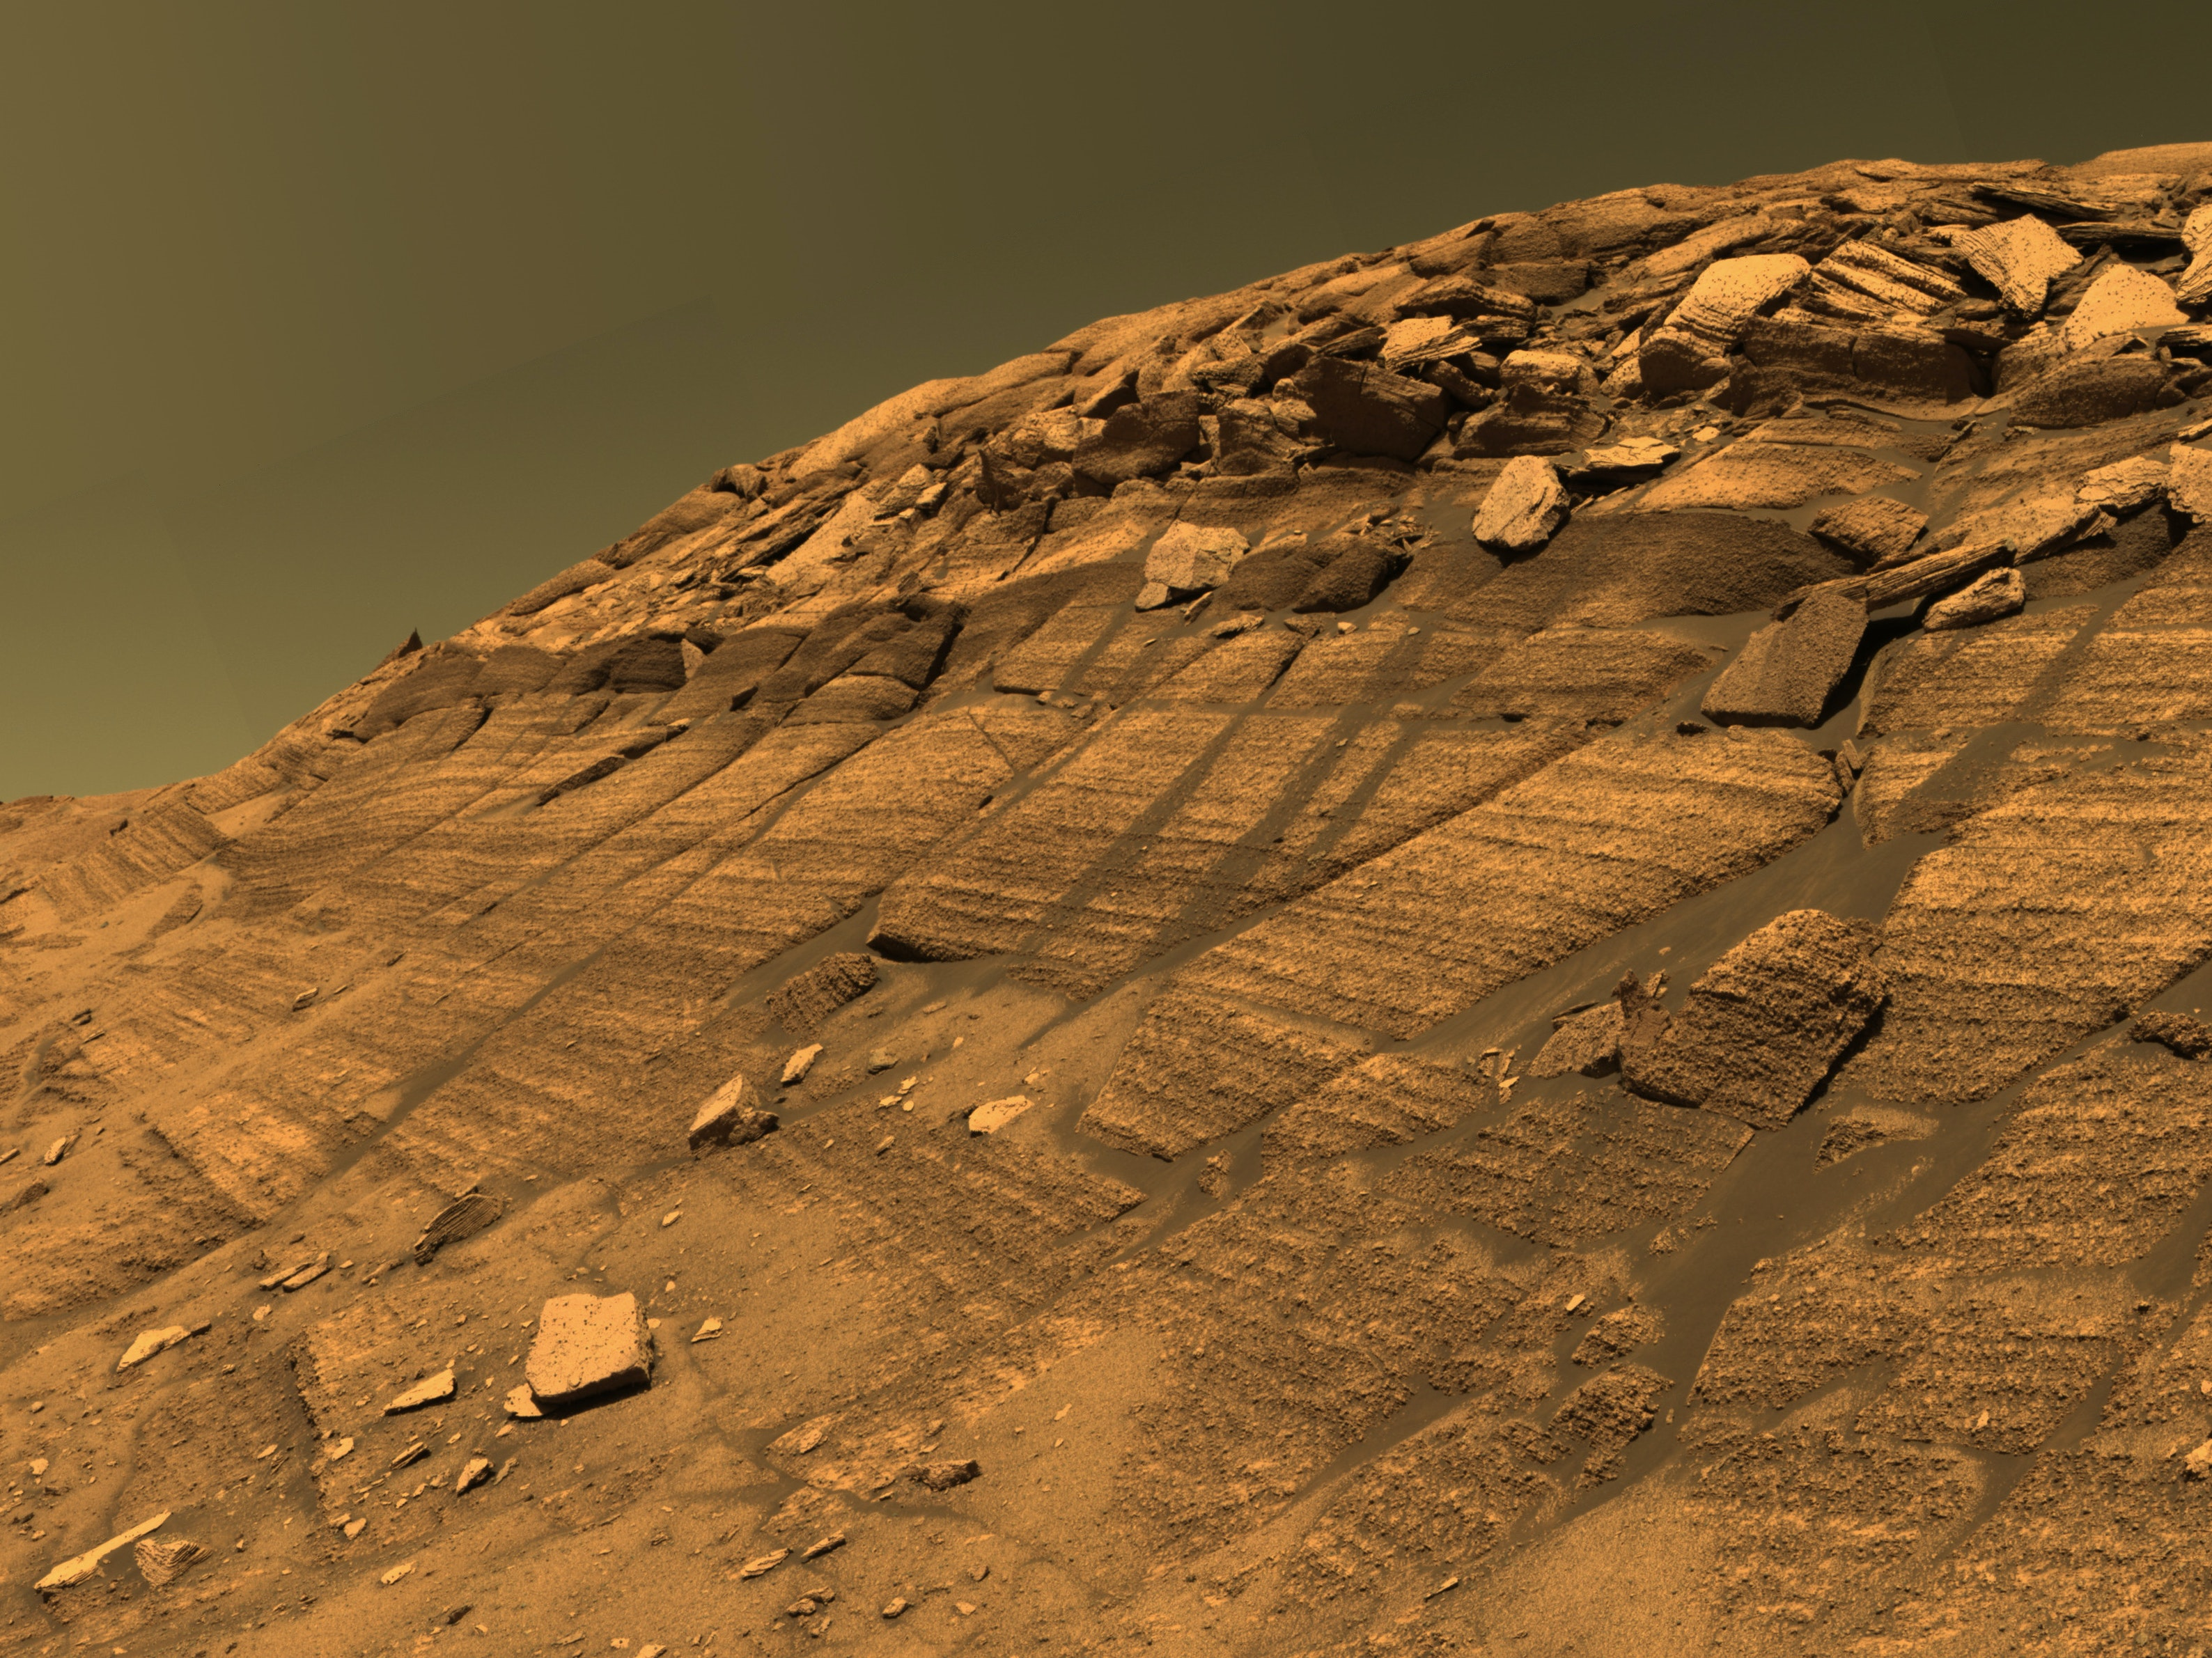 New Research Reveals Giant Tsunami Remnants on Mars